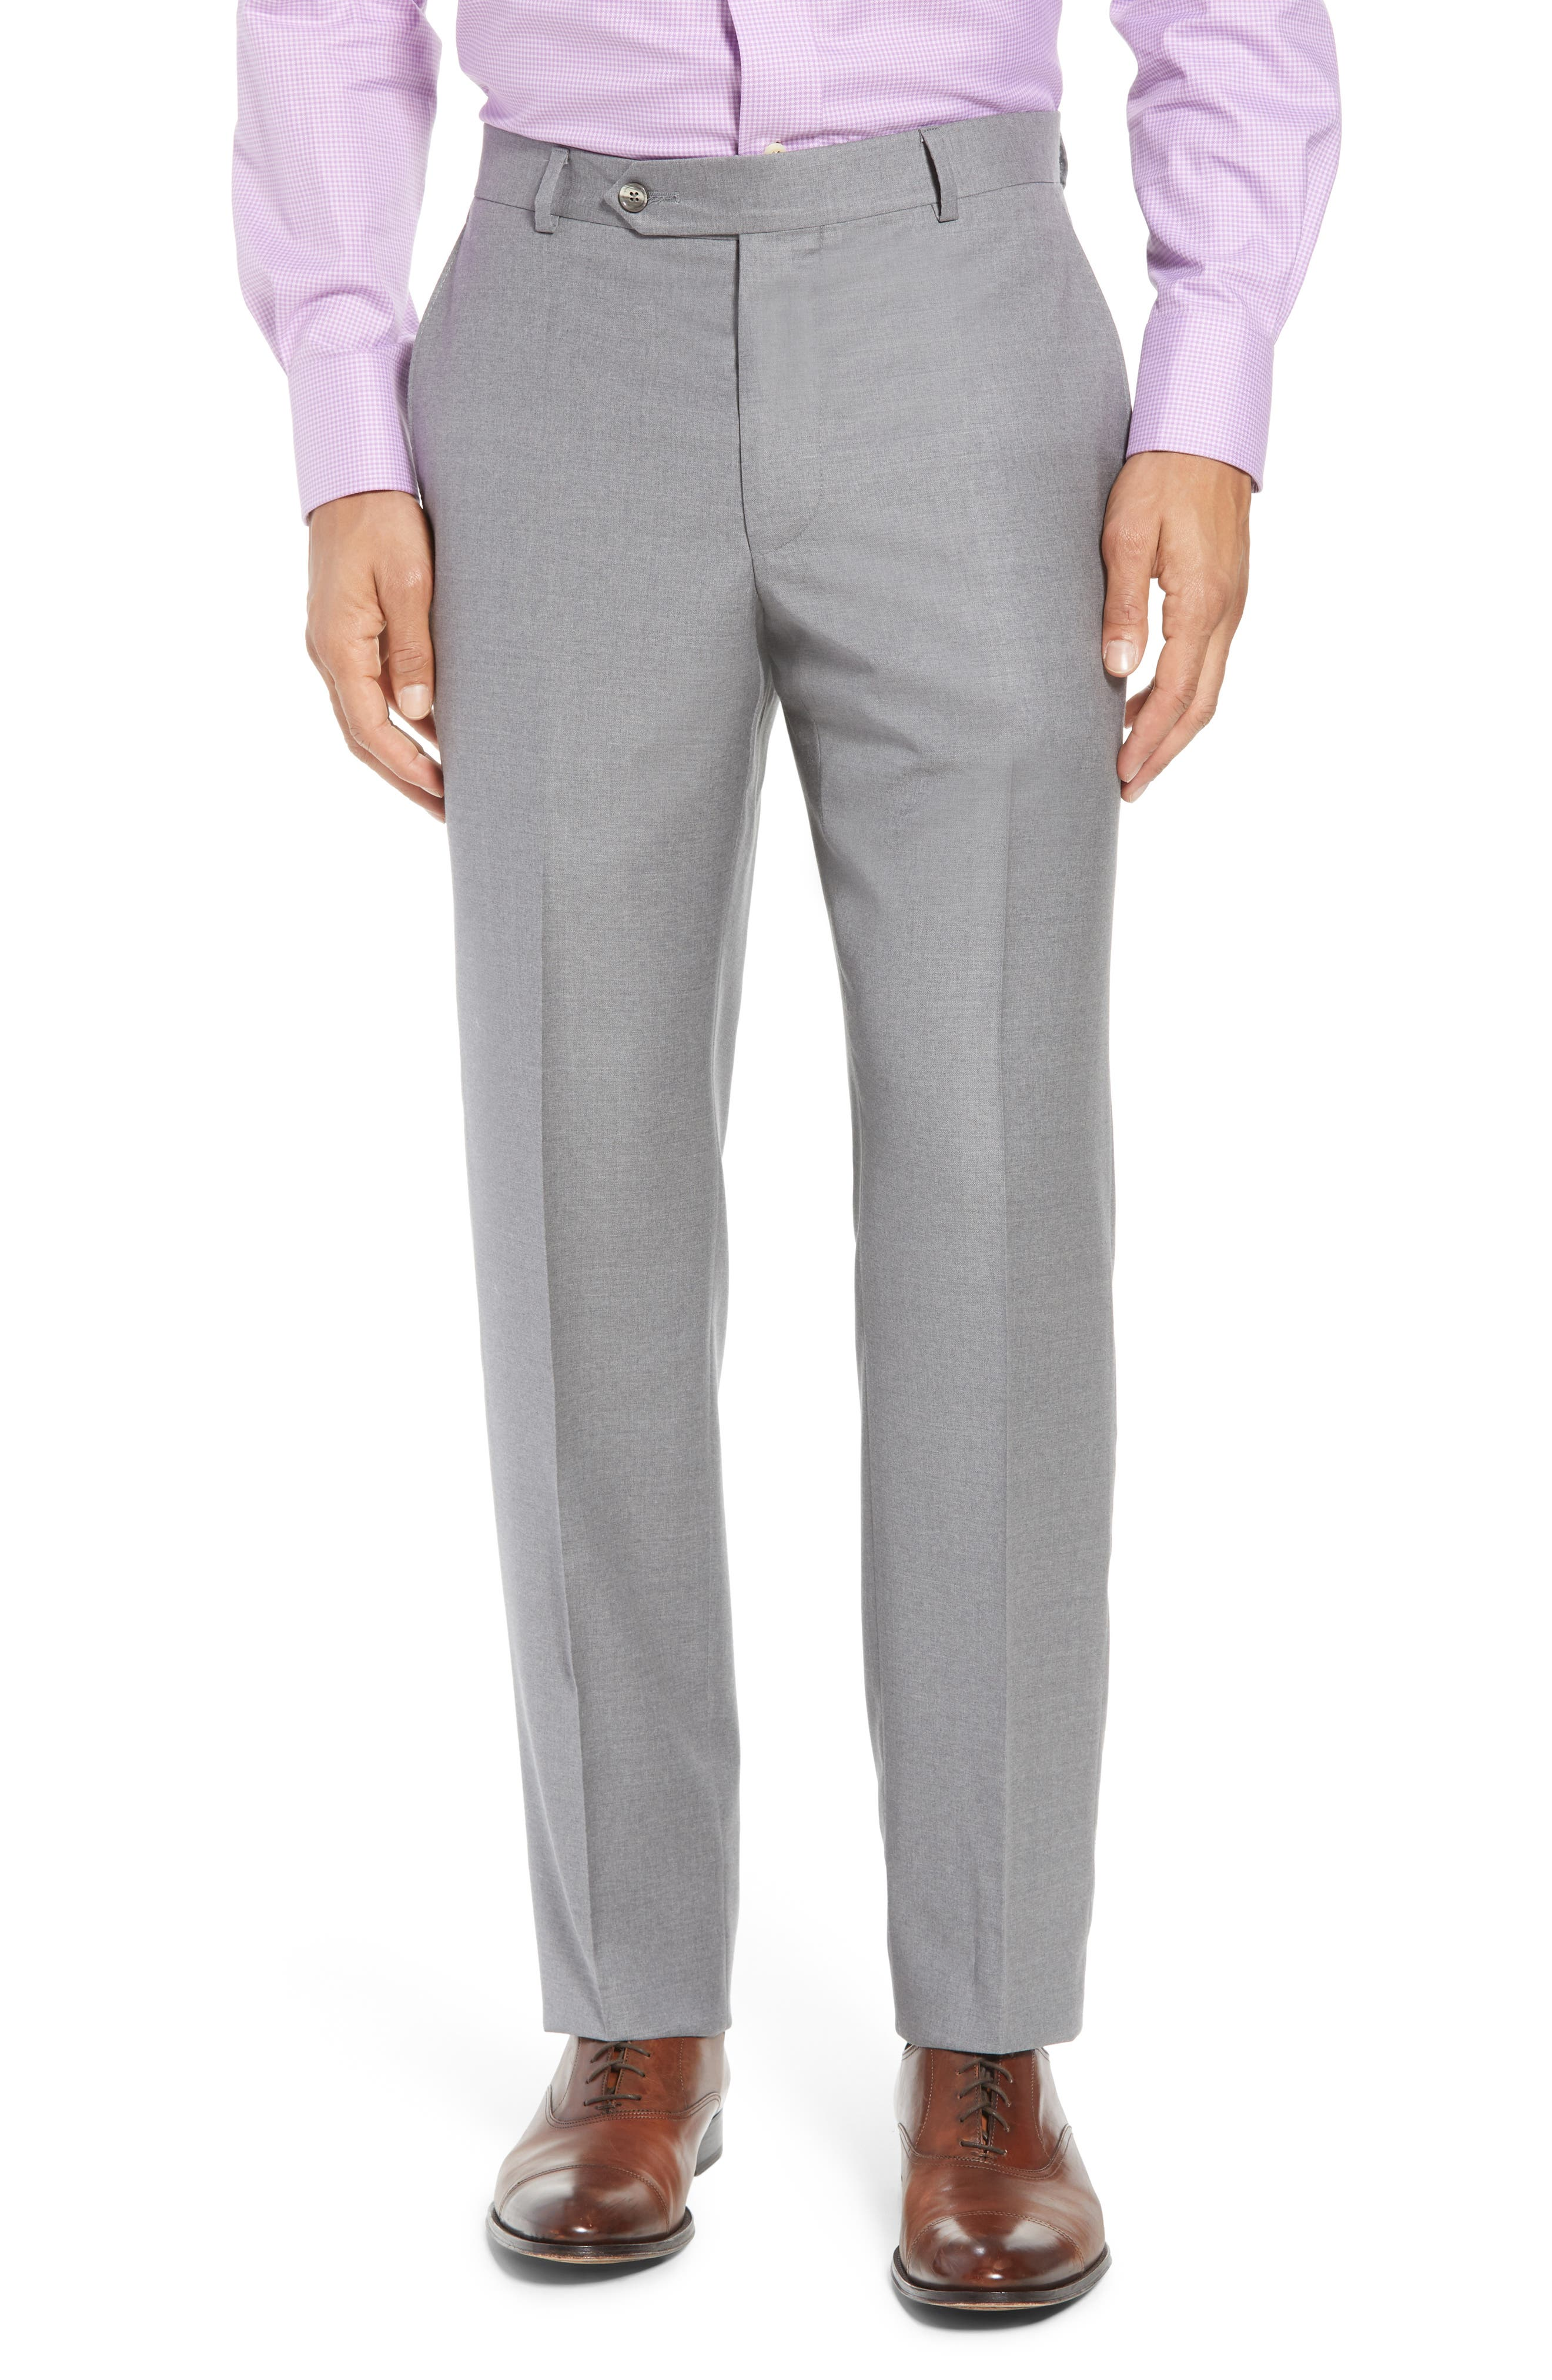 Bennet Classic Fit Solid Wool Suit,                             Alternate thumbnail 6, color,                             020